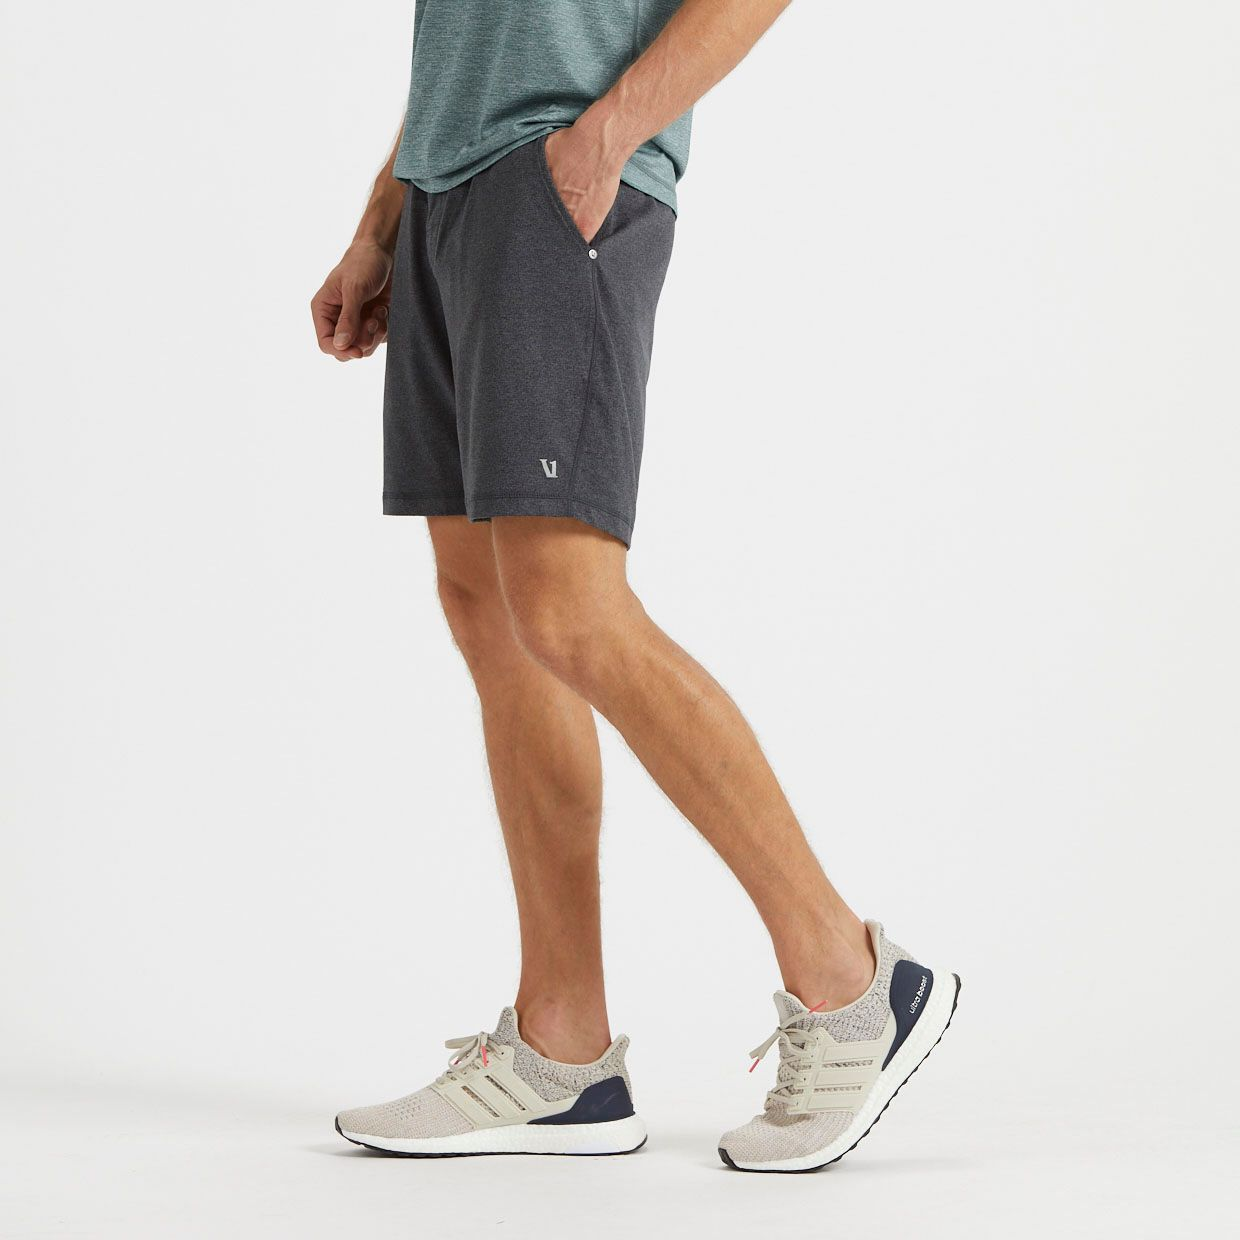 Vuori Athletic Shorts